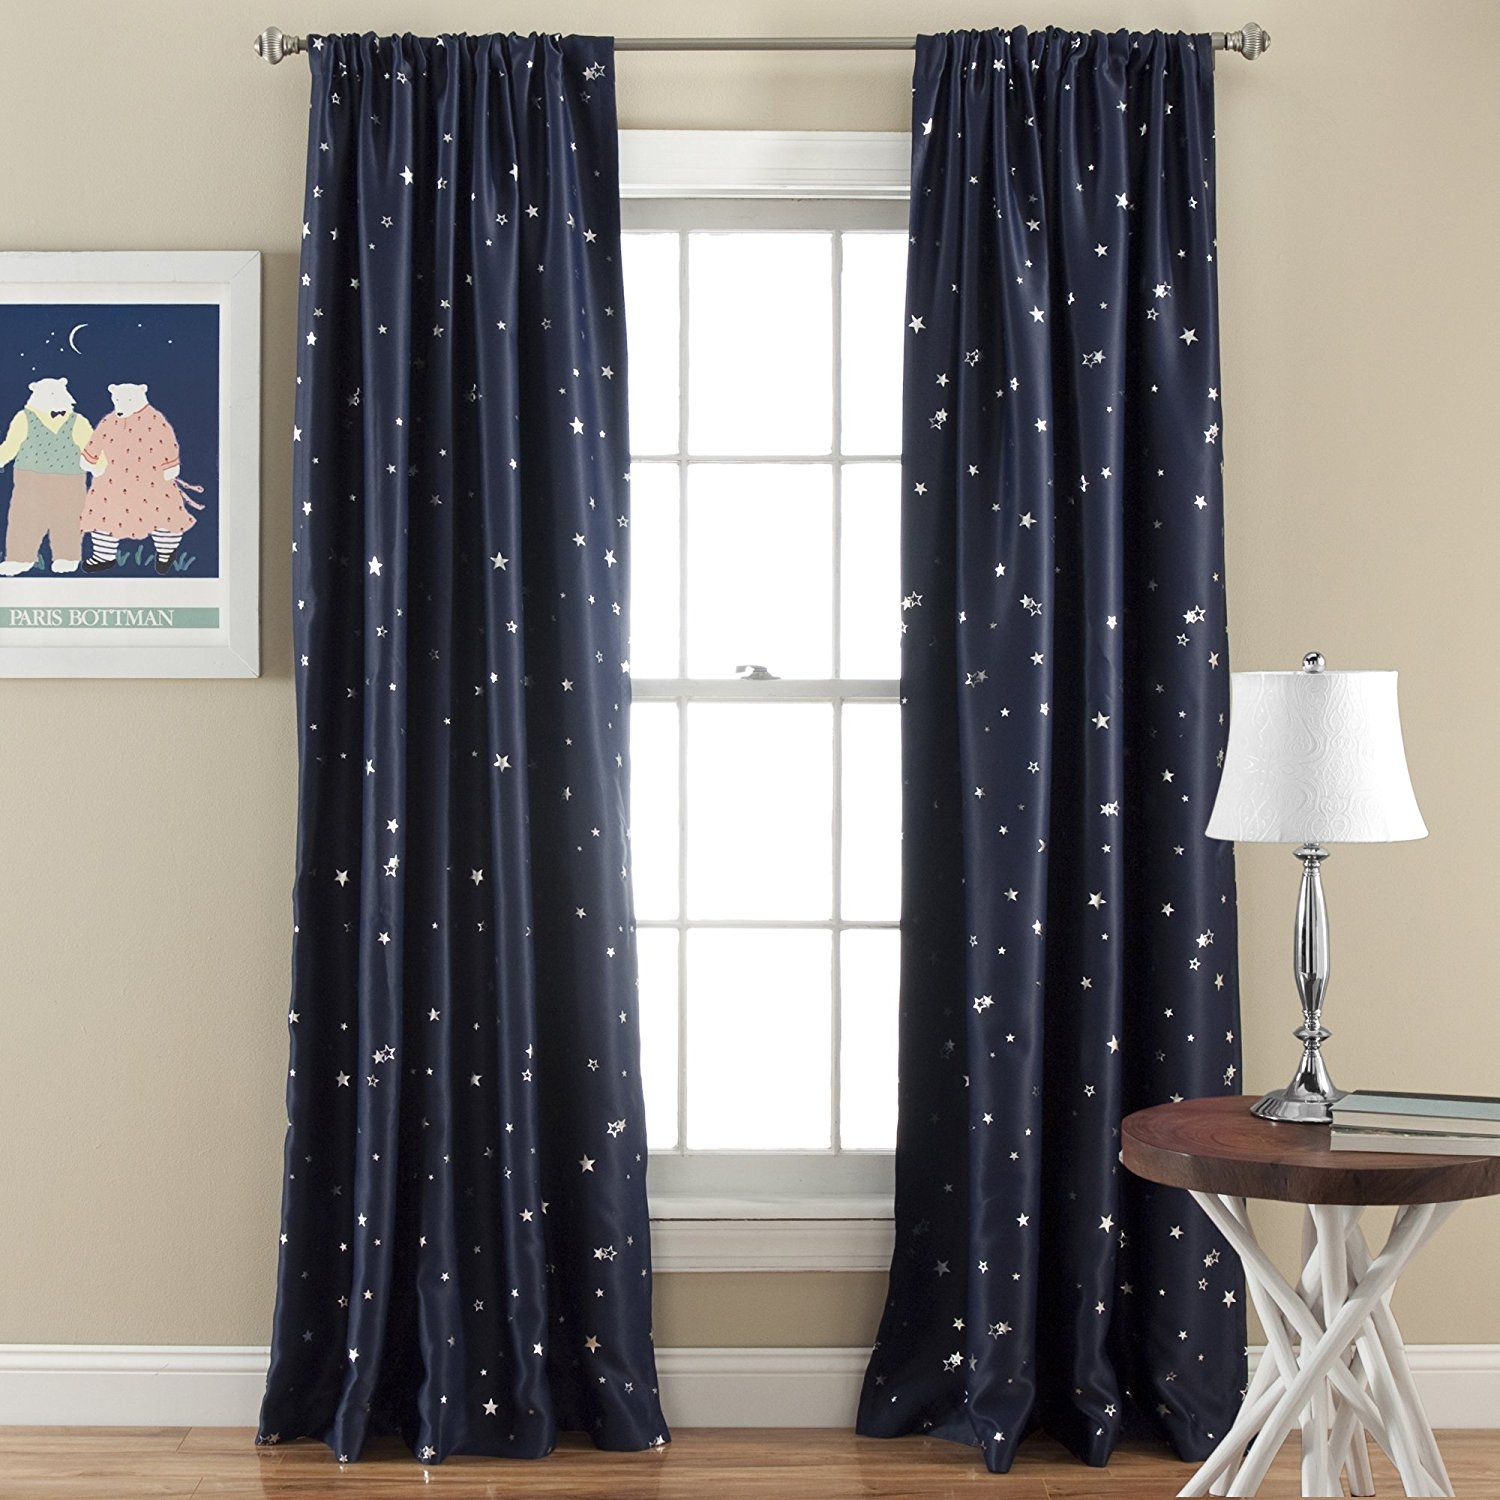 Cheap Curtains Online 15 Collection Of Thick Bedroom Curtains Curtain Ideas